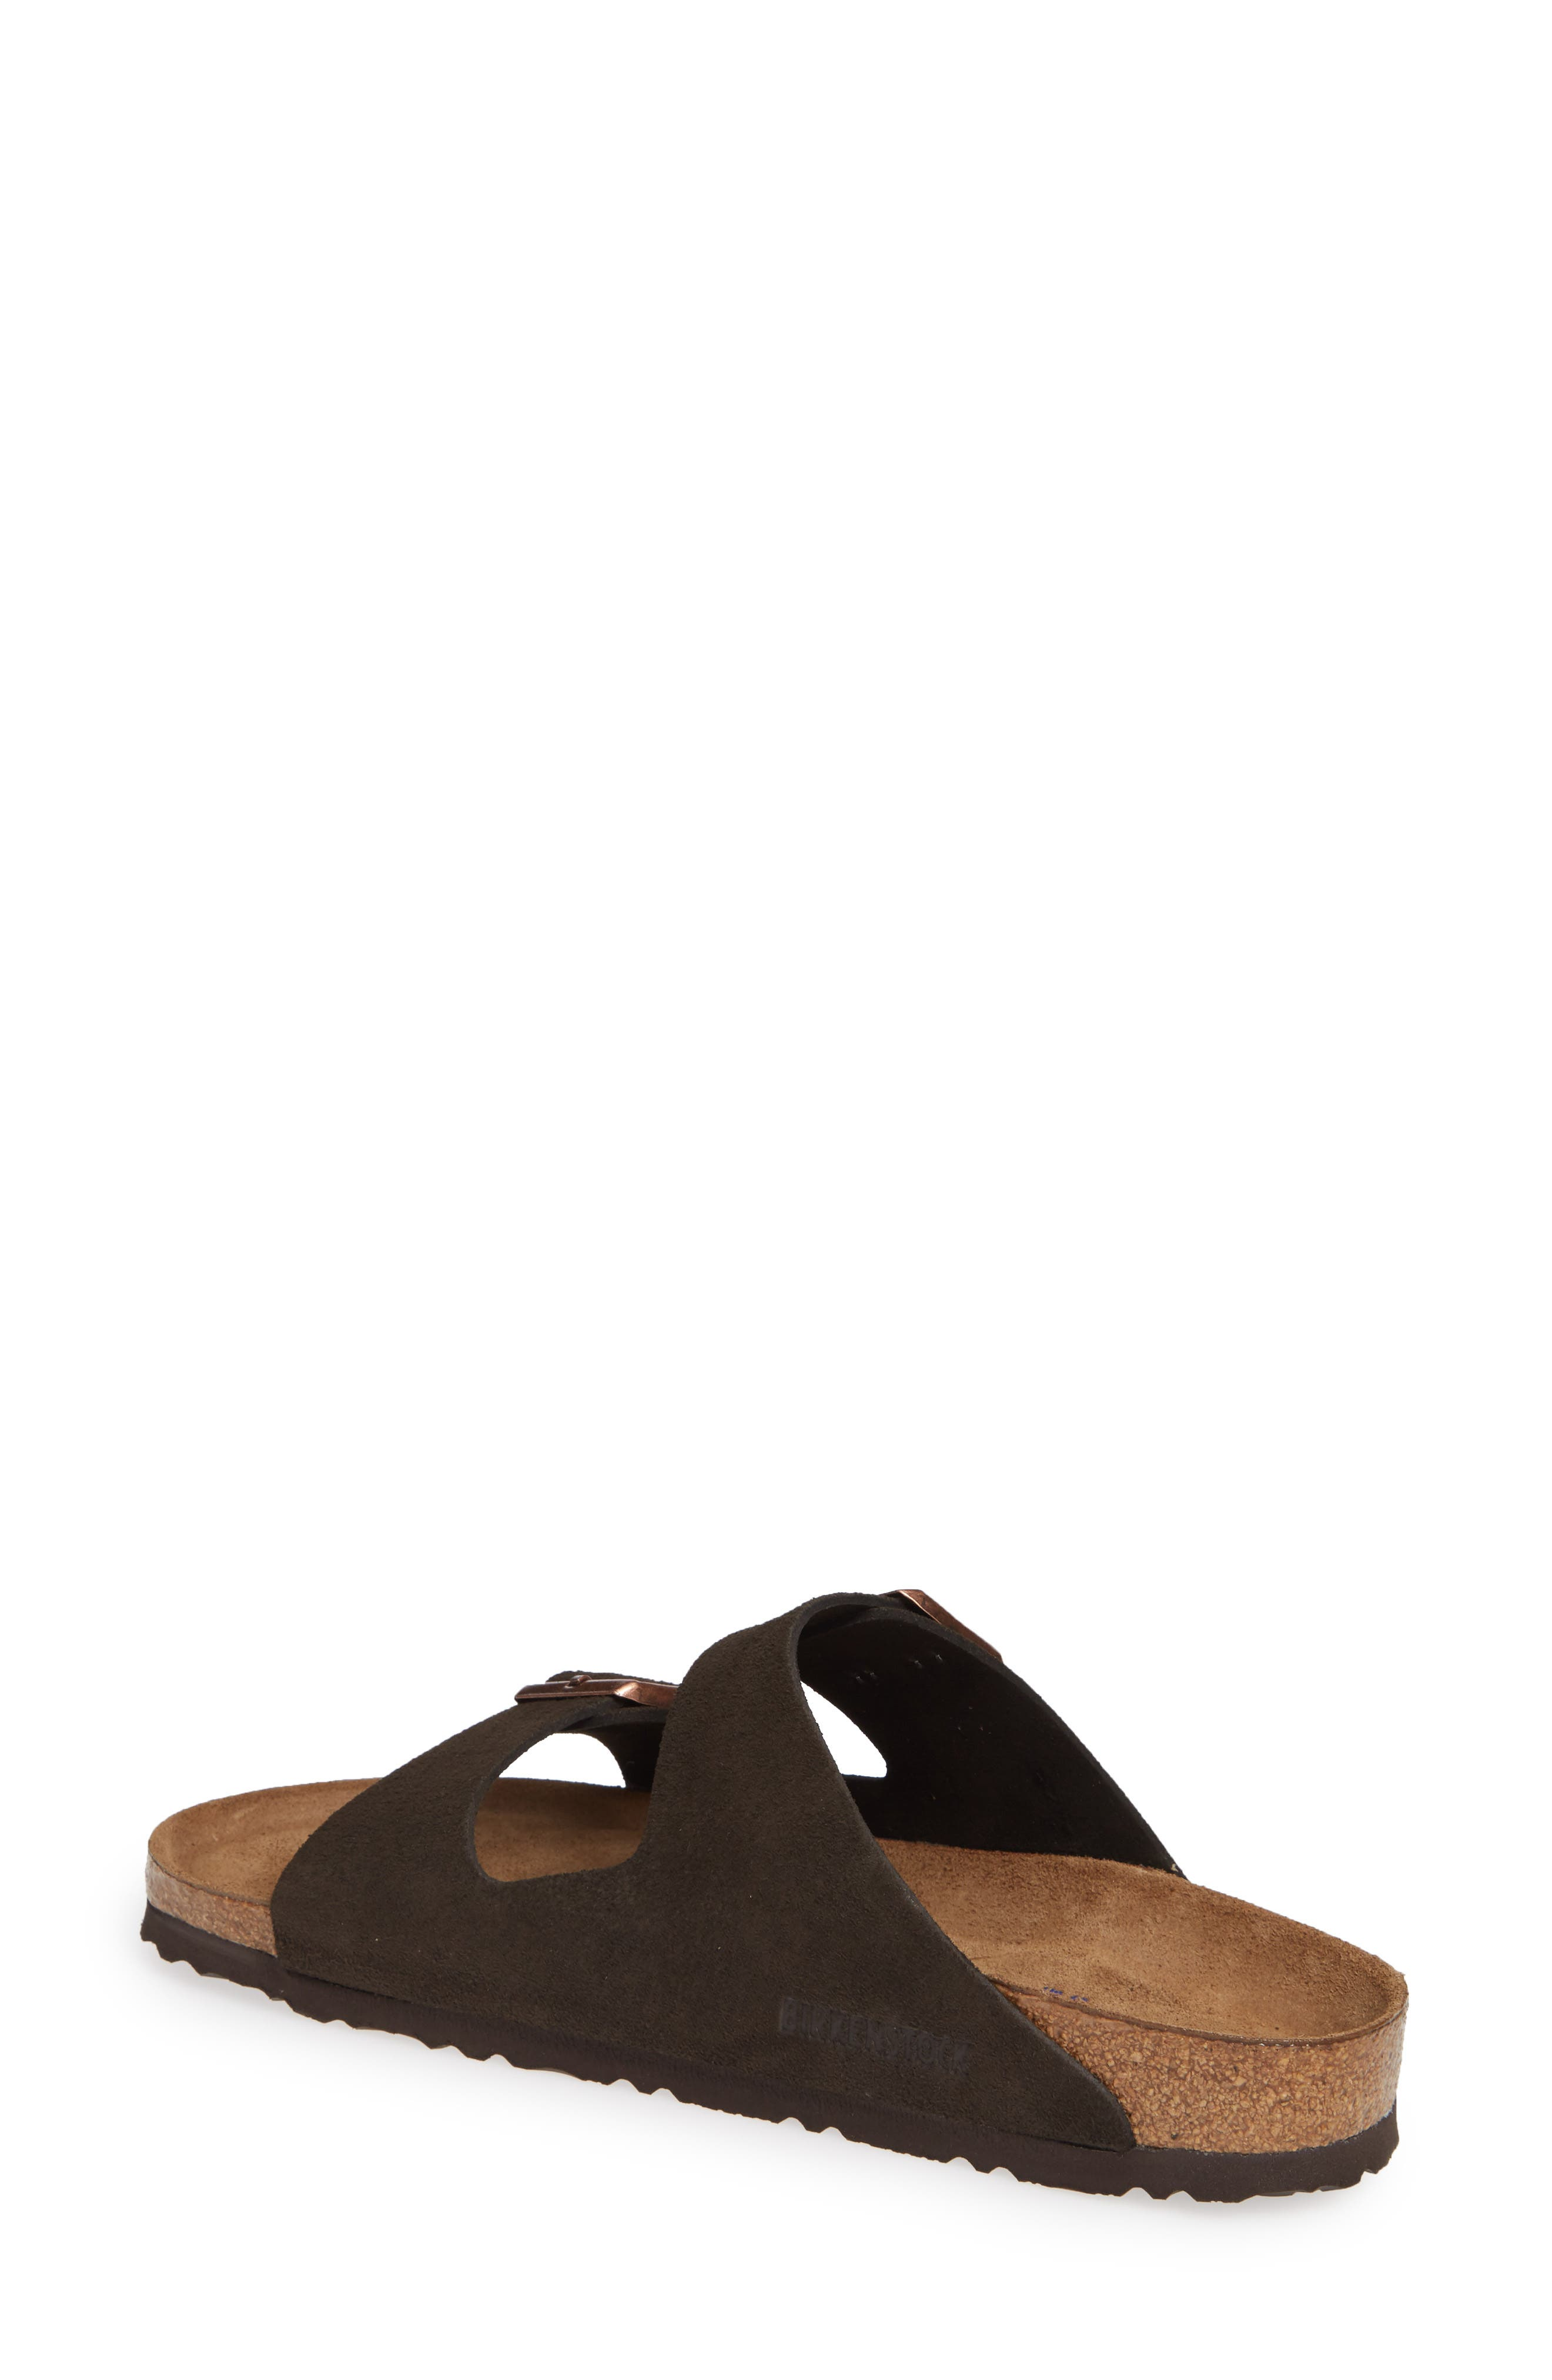 BIRKENSTOCK, 'Arizona' Soft Footbed Suede Sandal, Alternate thumbnail 2, color, MOCHA SUEDE